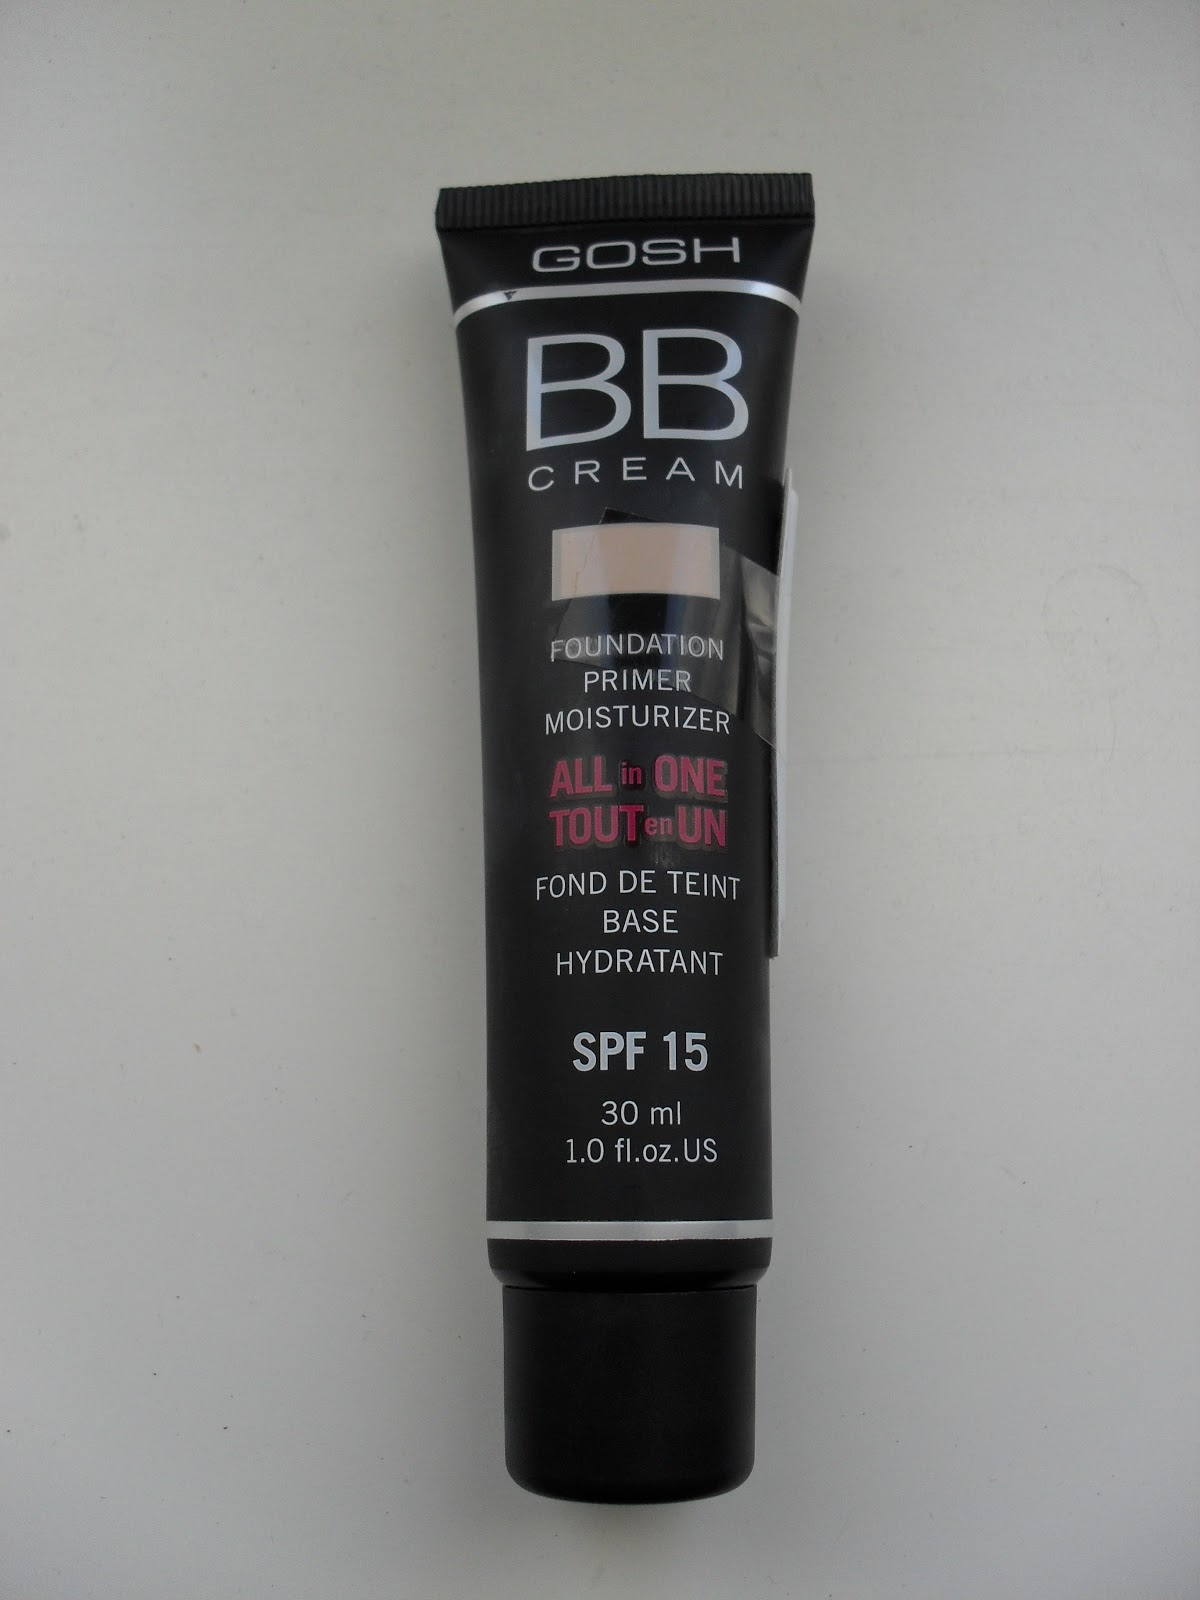 lady lockenlicht review gosh all in one bb cream vegan. Black Bedroom Furniture Sets. Home Design Ideas